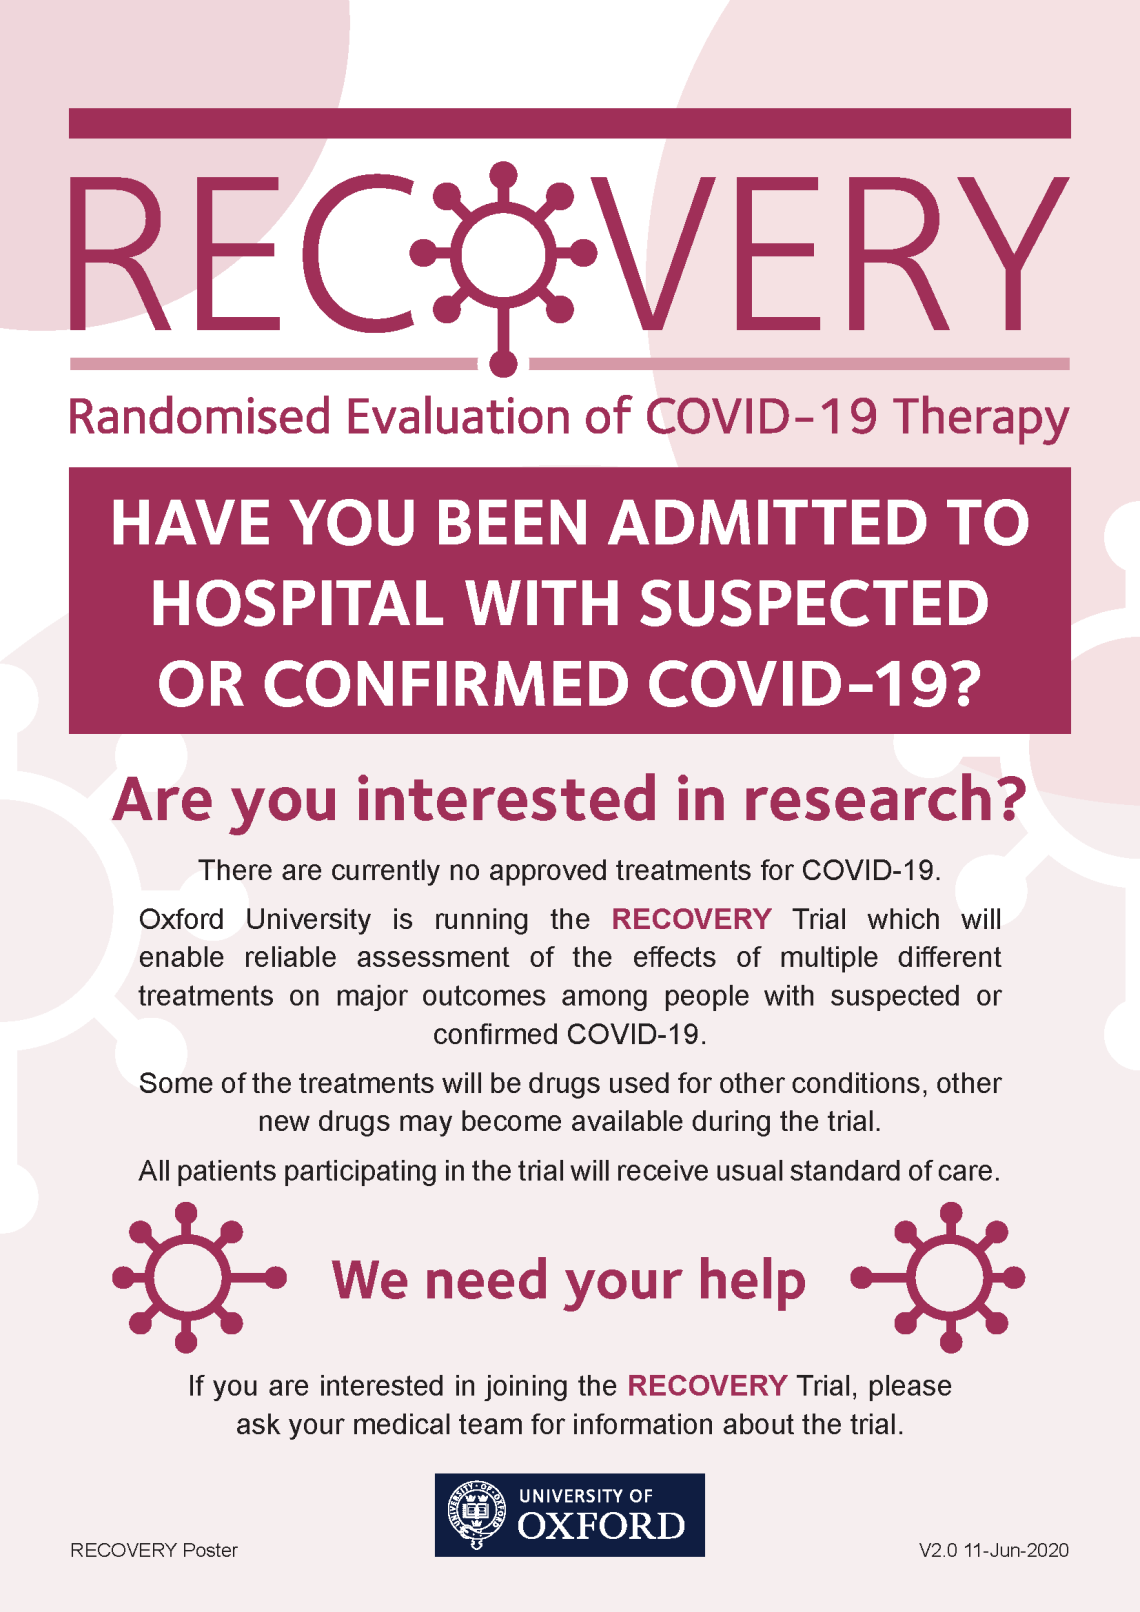 RECOVERY Trial Poster v2.0 11-Jun-2020 A4.png